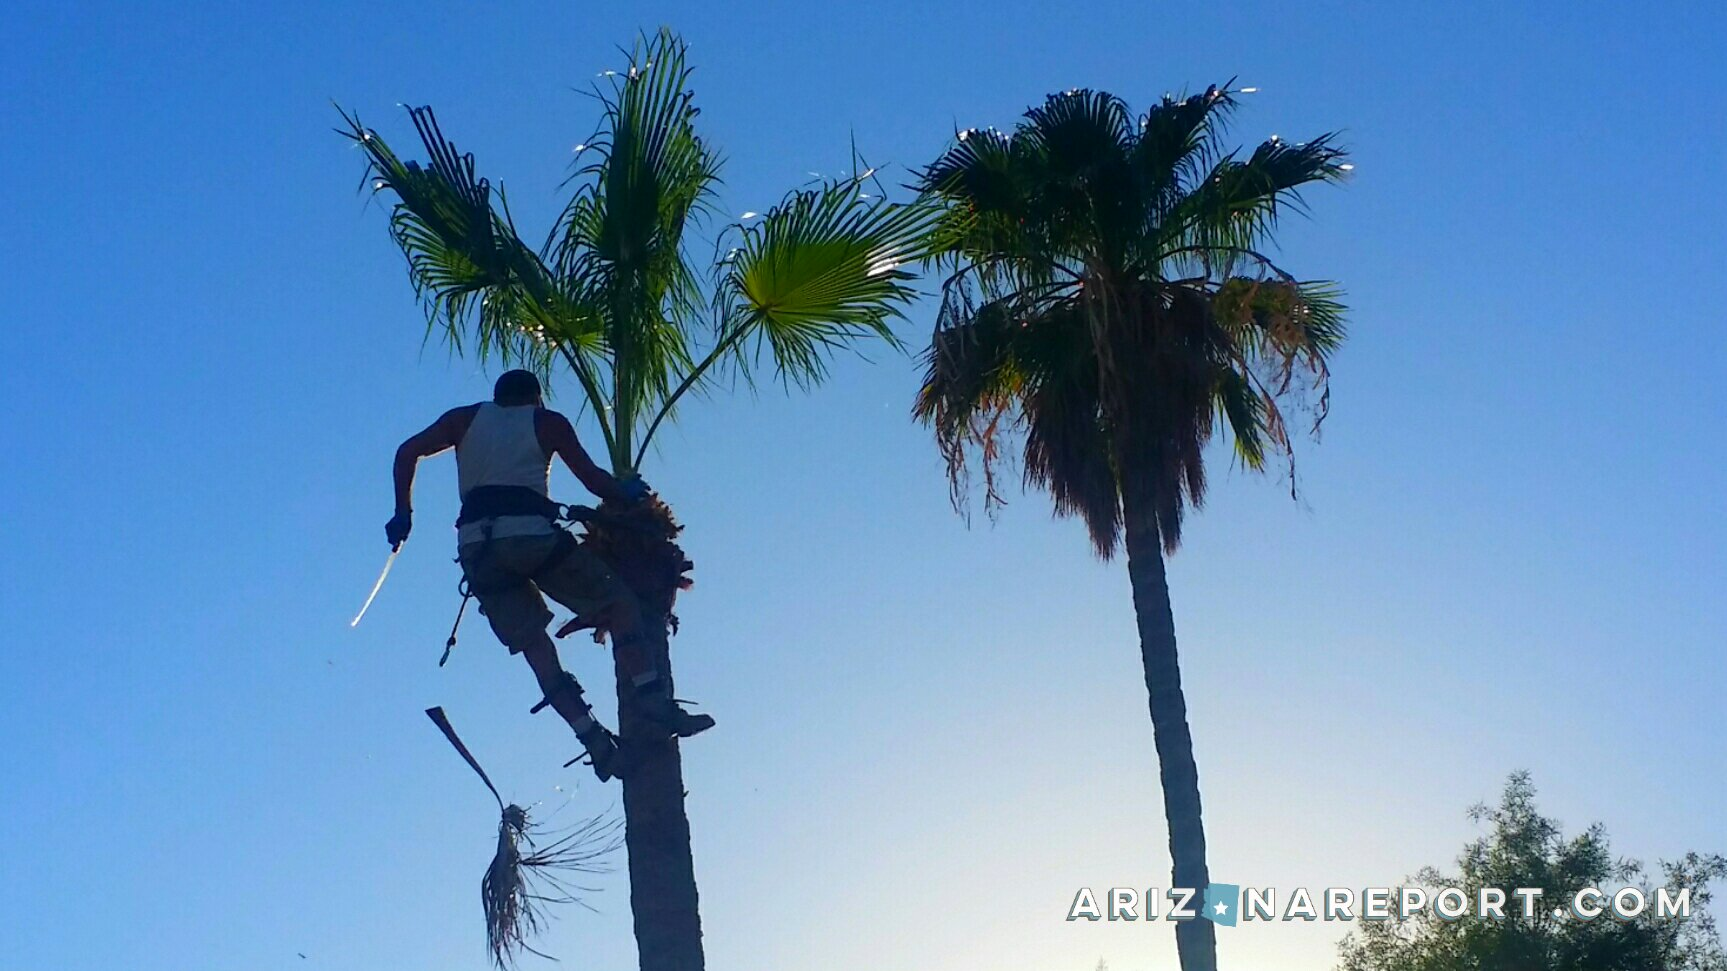 the high art of pruning palm trees in phoenix the arizona report